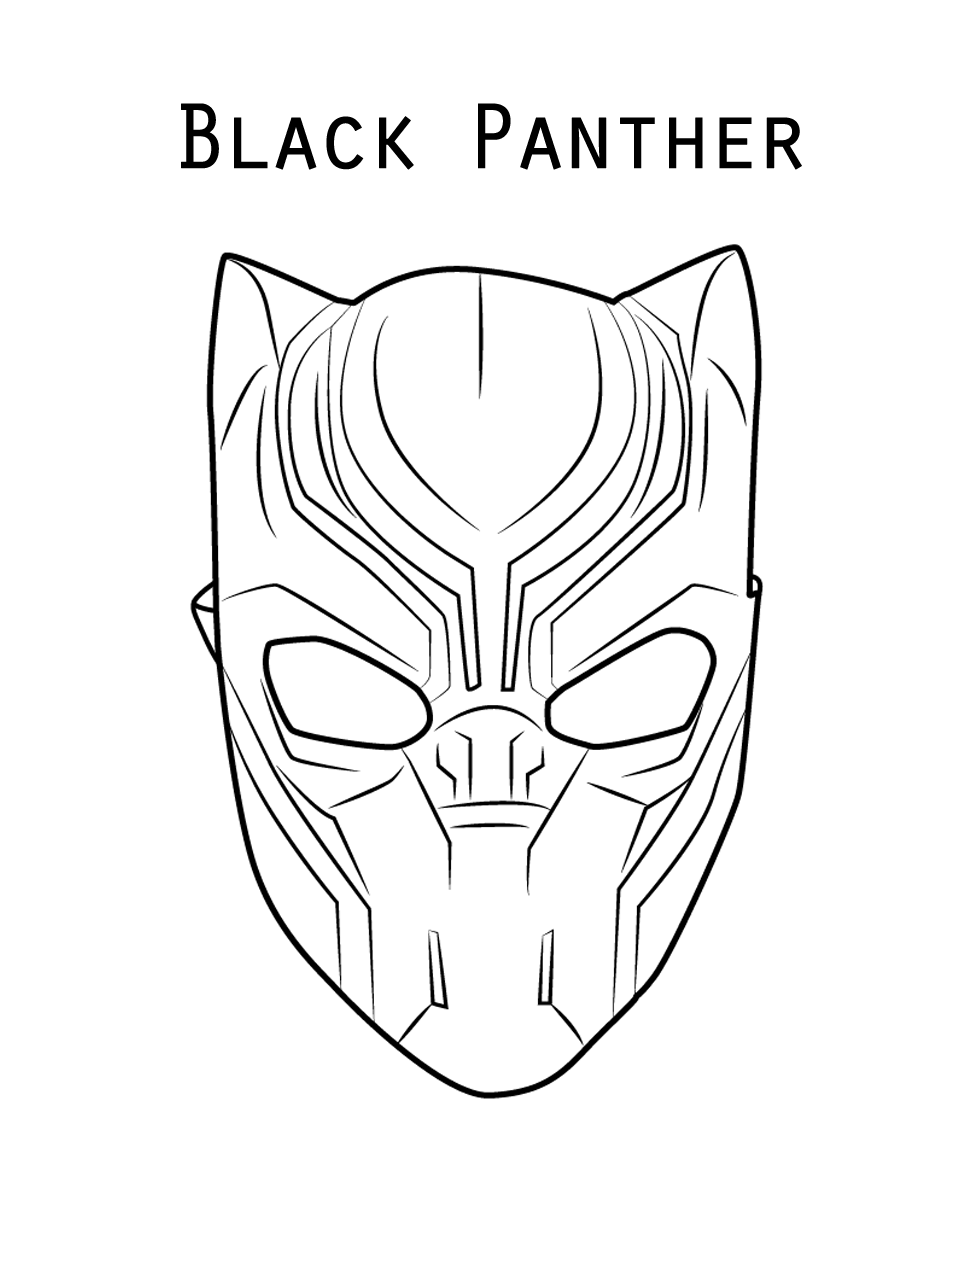 20 Free Printable Black Panther Coloring Pages Coloring